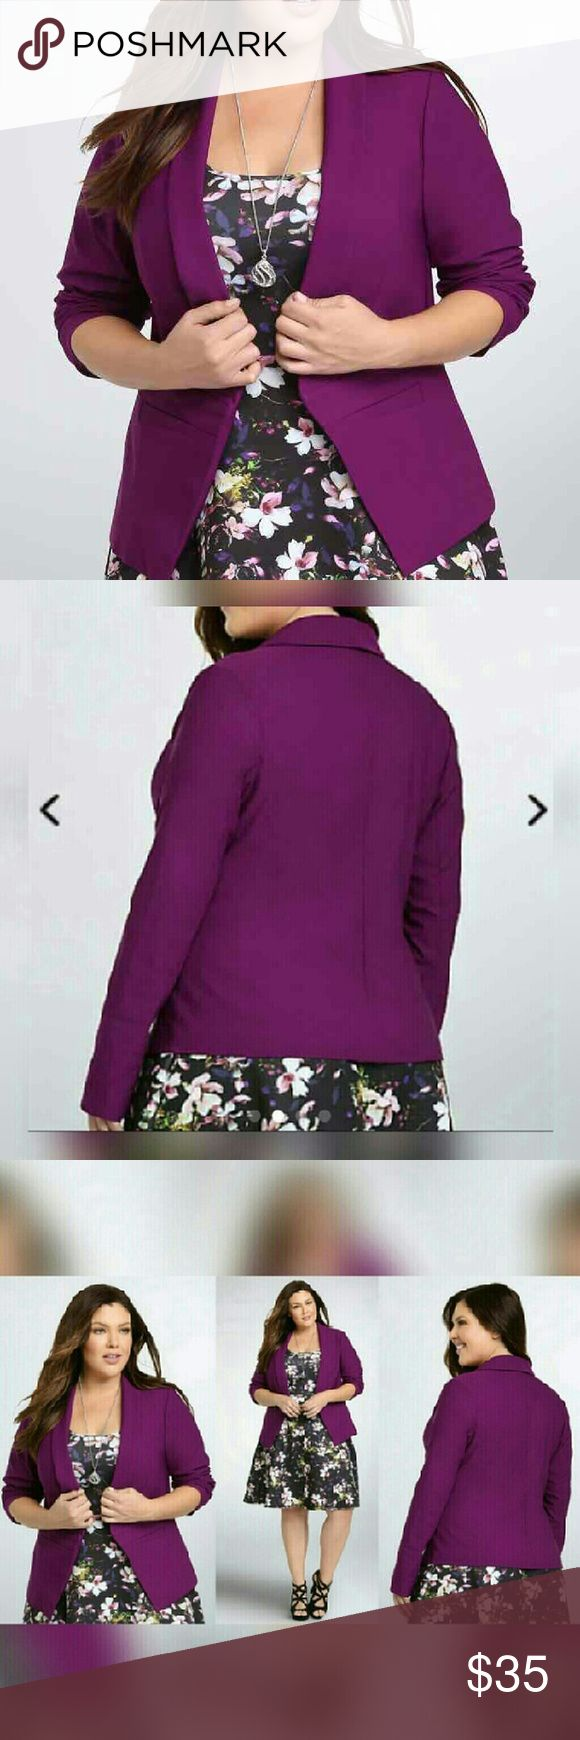 """torrid cut away blazer EUC! Only worn once! ?? I also have the dress for sale in another listing.   """"This blazer is an easy outfit topper to throw on and super lightweight. Eye-popping purple punches up the office-ready design, while the sleek open front, figure-defining seams, and faux pockets will make you the star of any water-cooler discussion.""""   Torrid size 3/3x (22W-24W) torrid Jackets & Coats Blazers"""